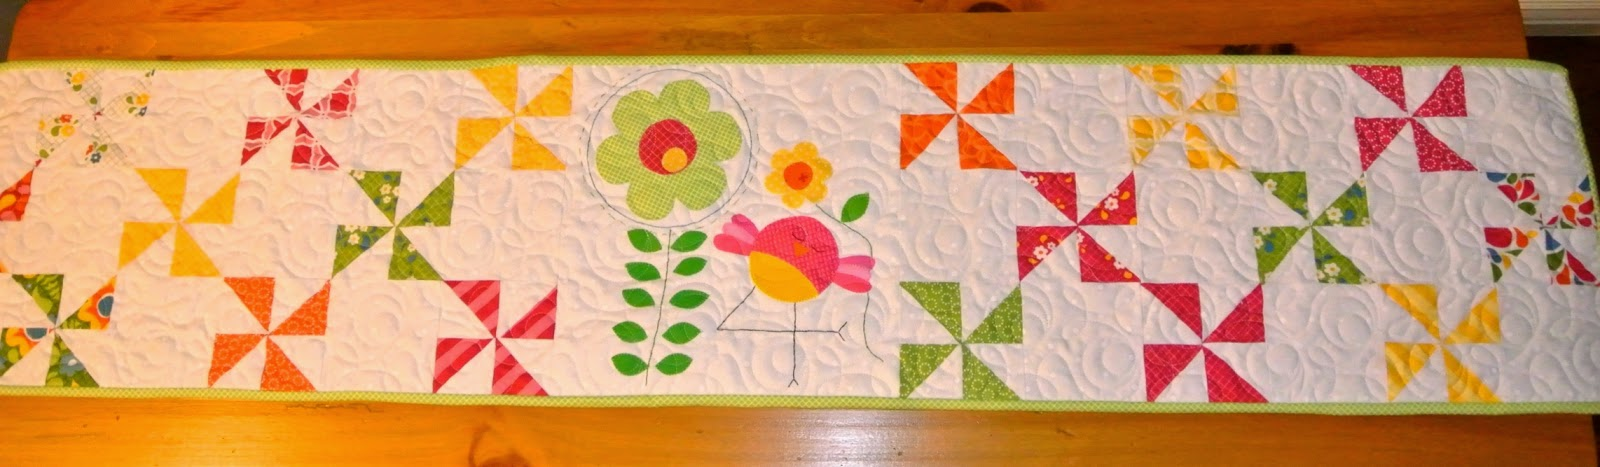 meags and me quiltmaker 100 blocks spring table runner